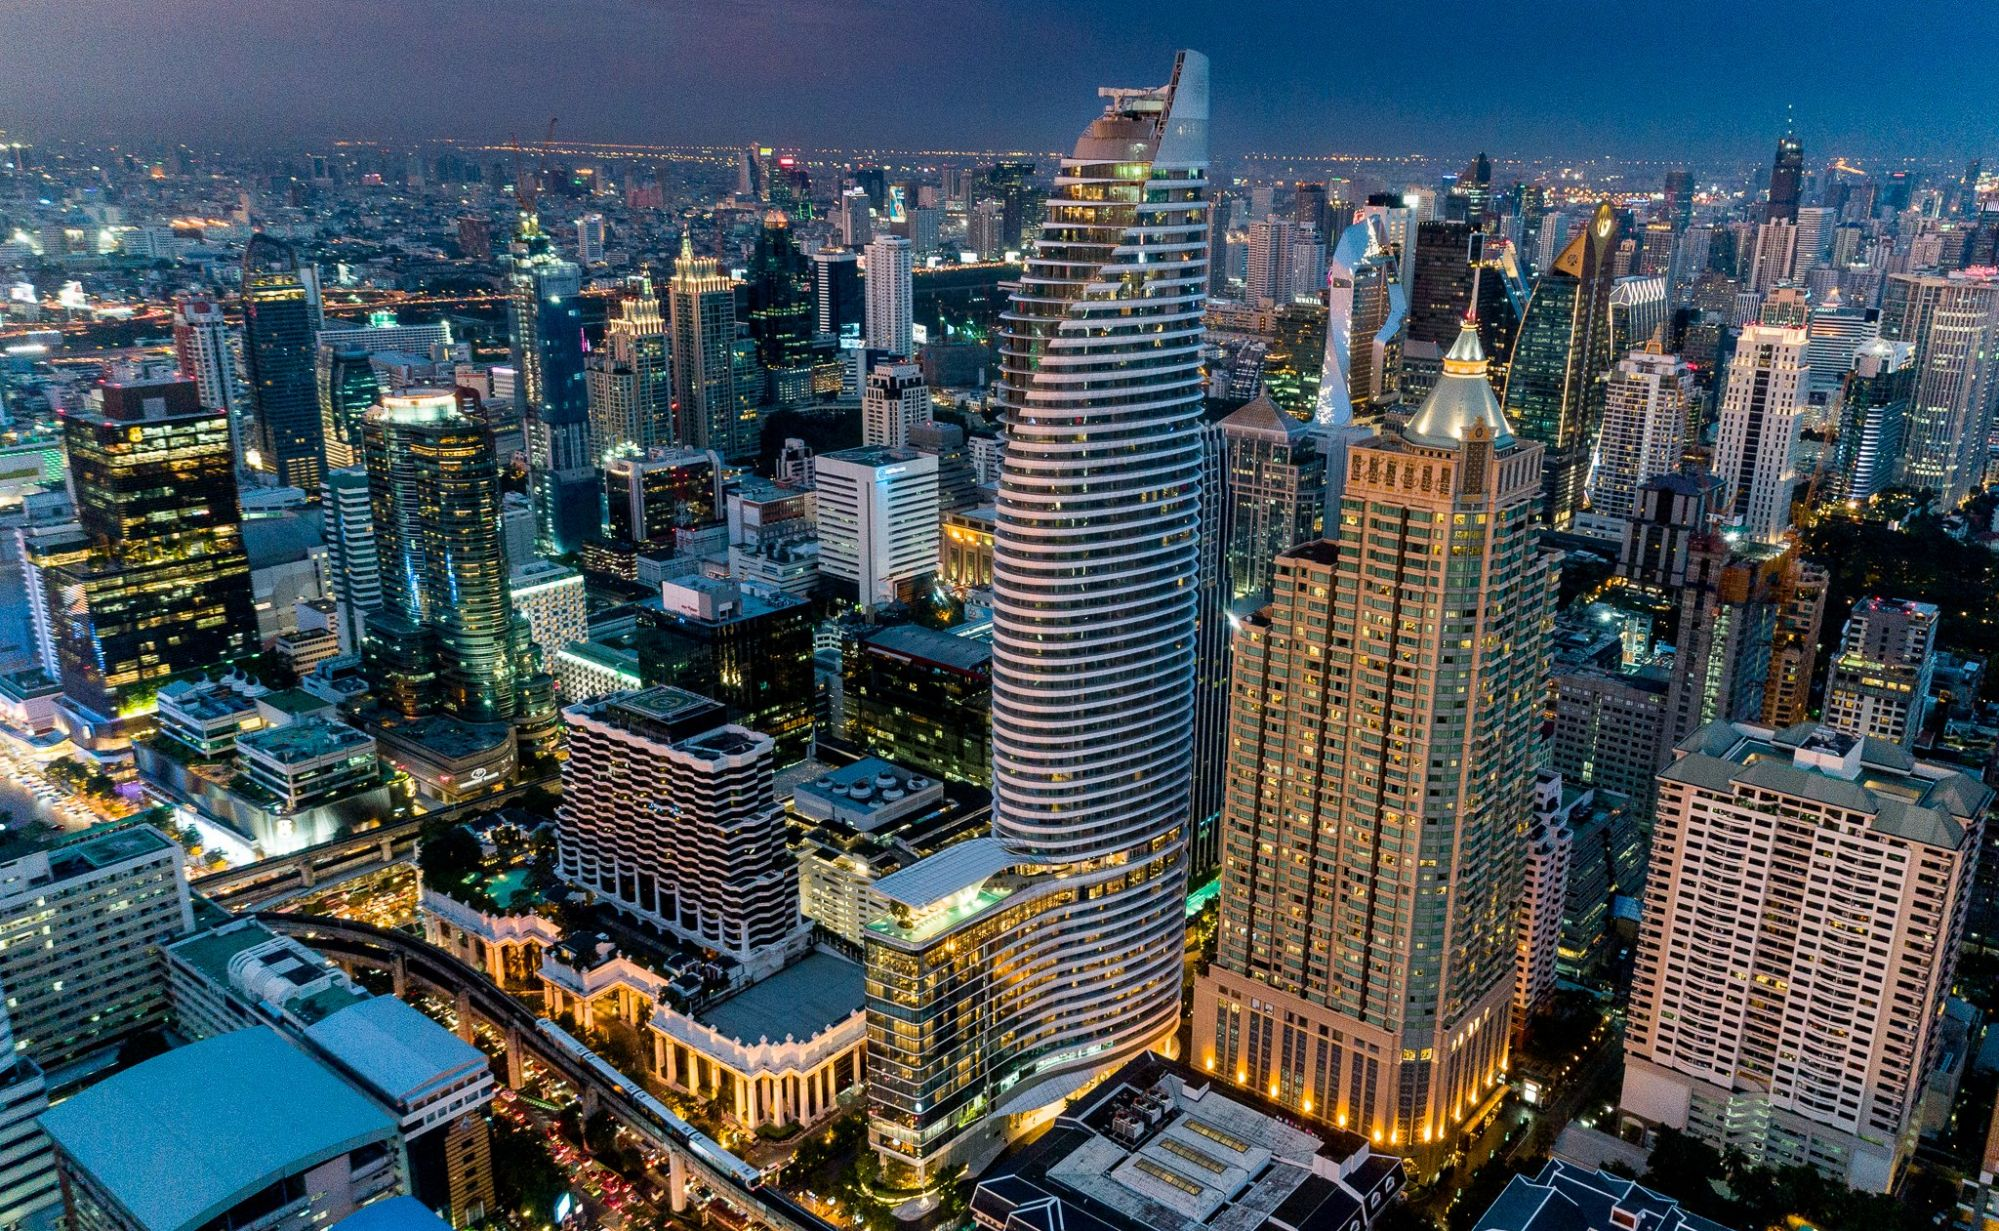 Waldorf Astoria Bangkok: Where New York Glamour Meets Thai Culture